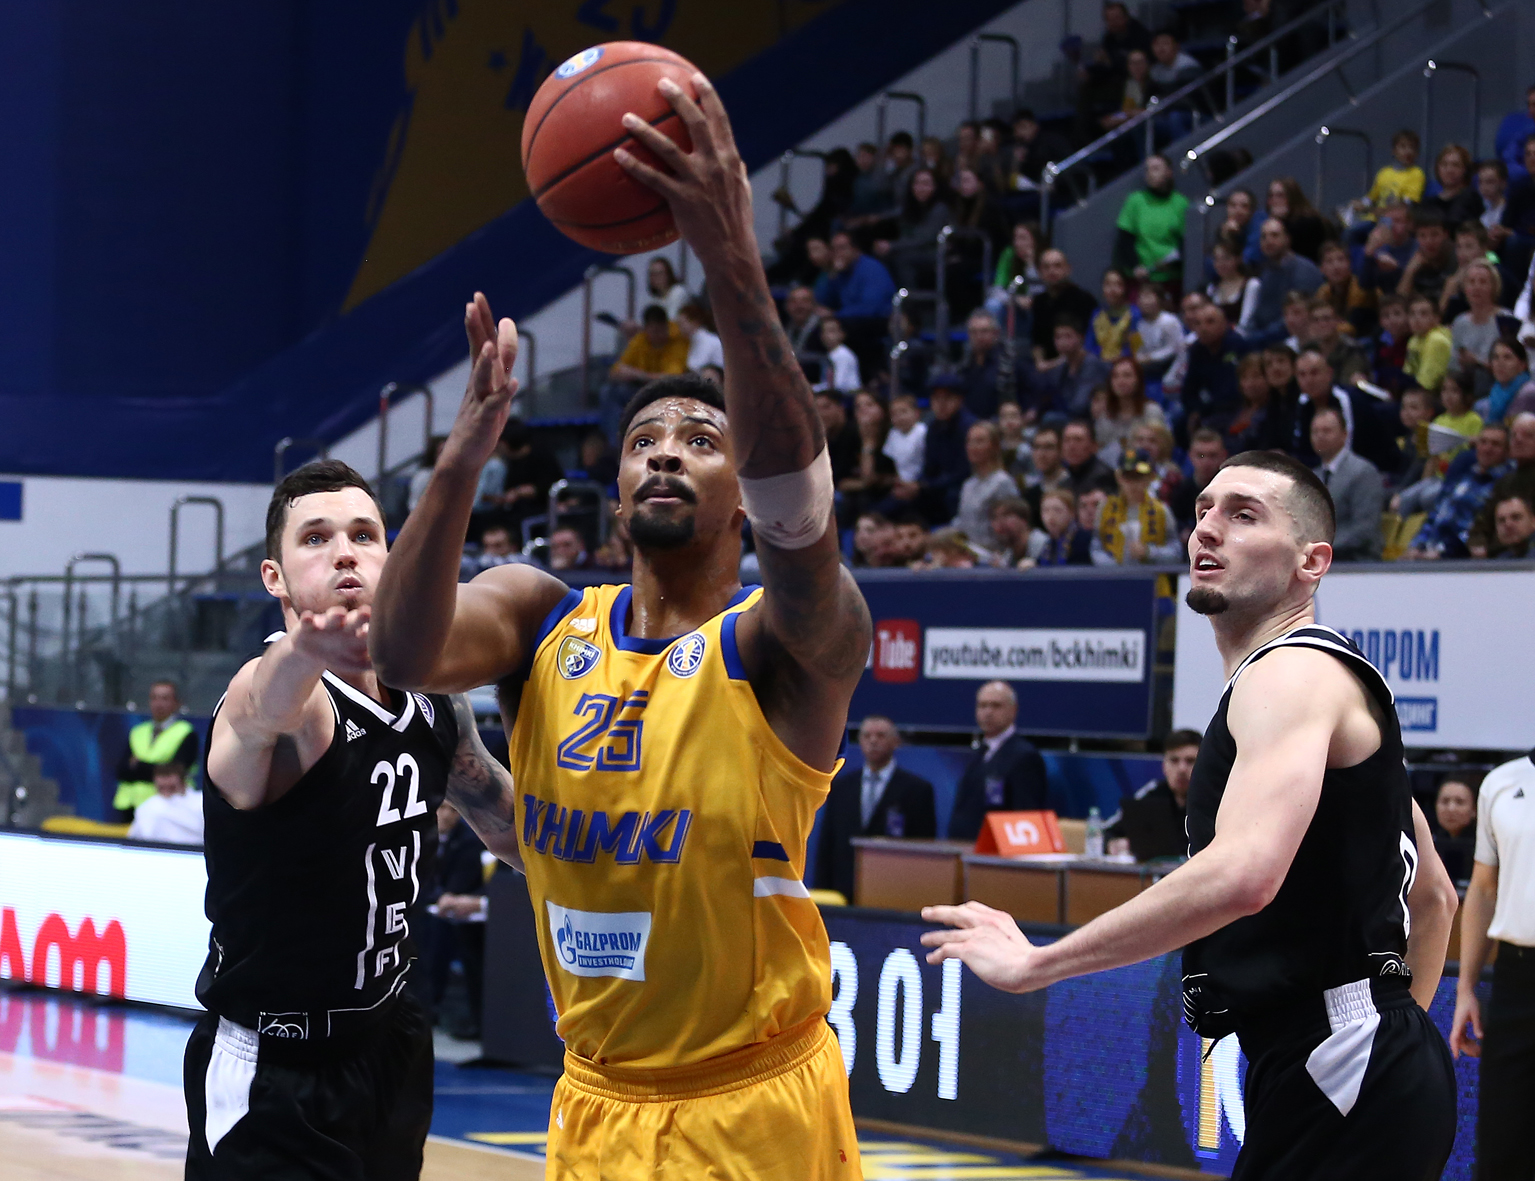 Khimki Cripples VEF's Offense, Ties CSKA For 1st Place